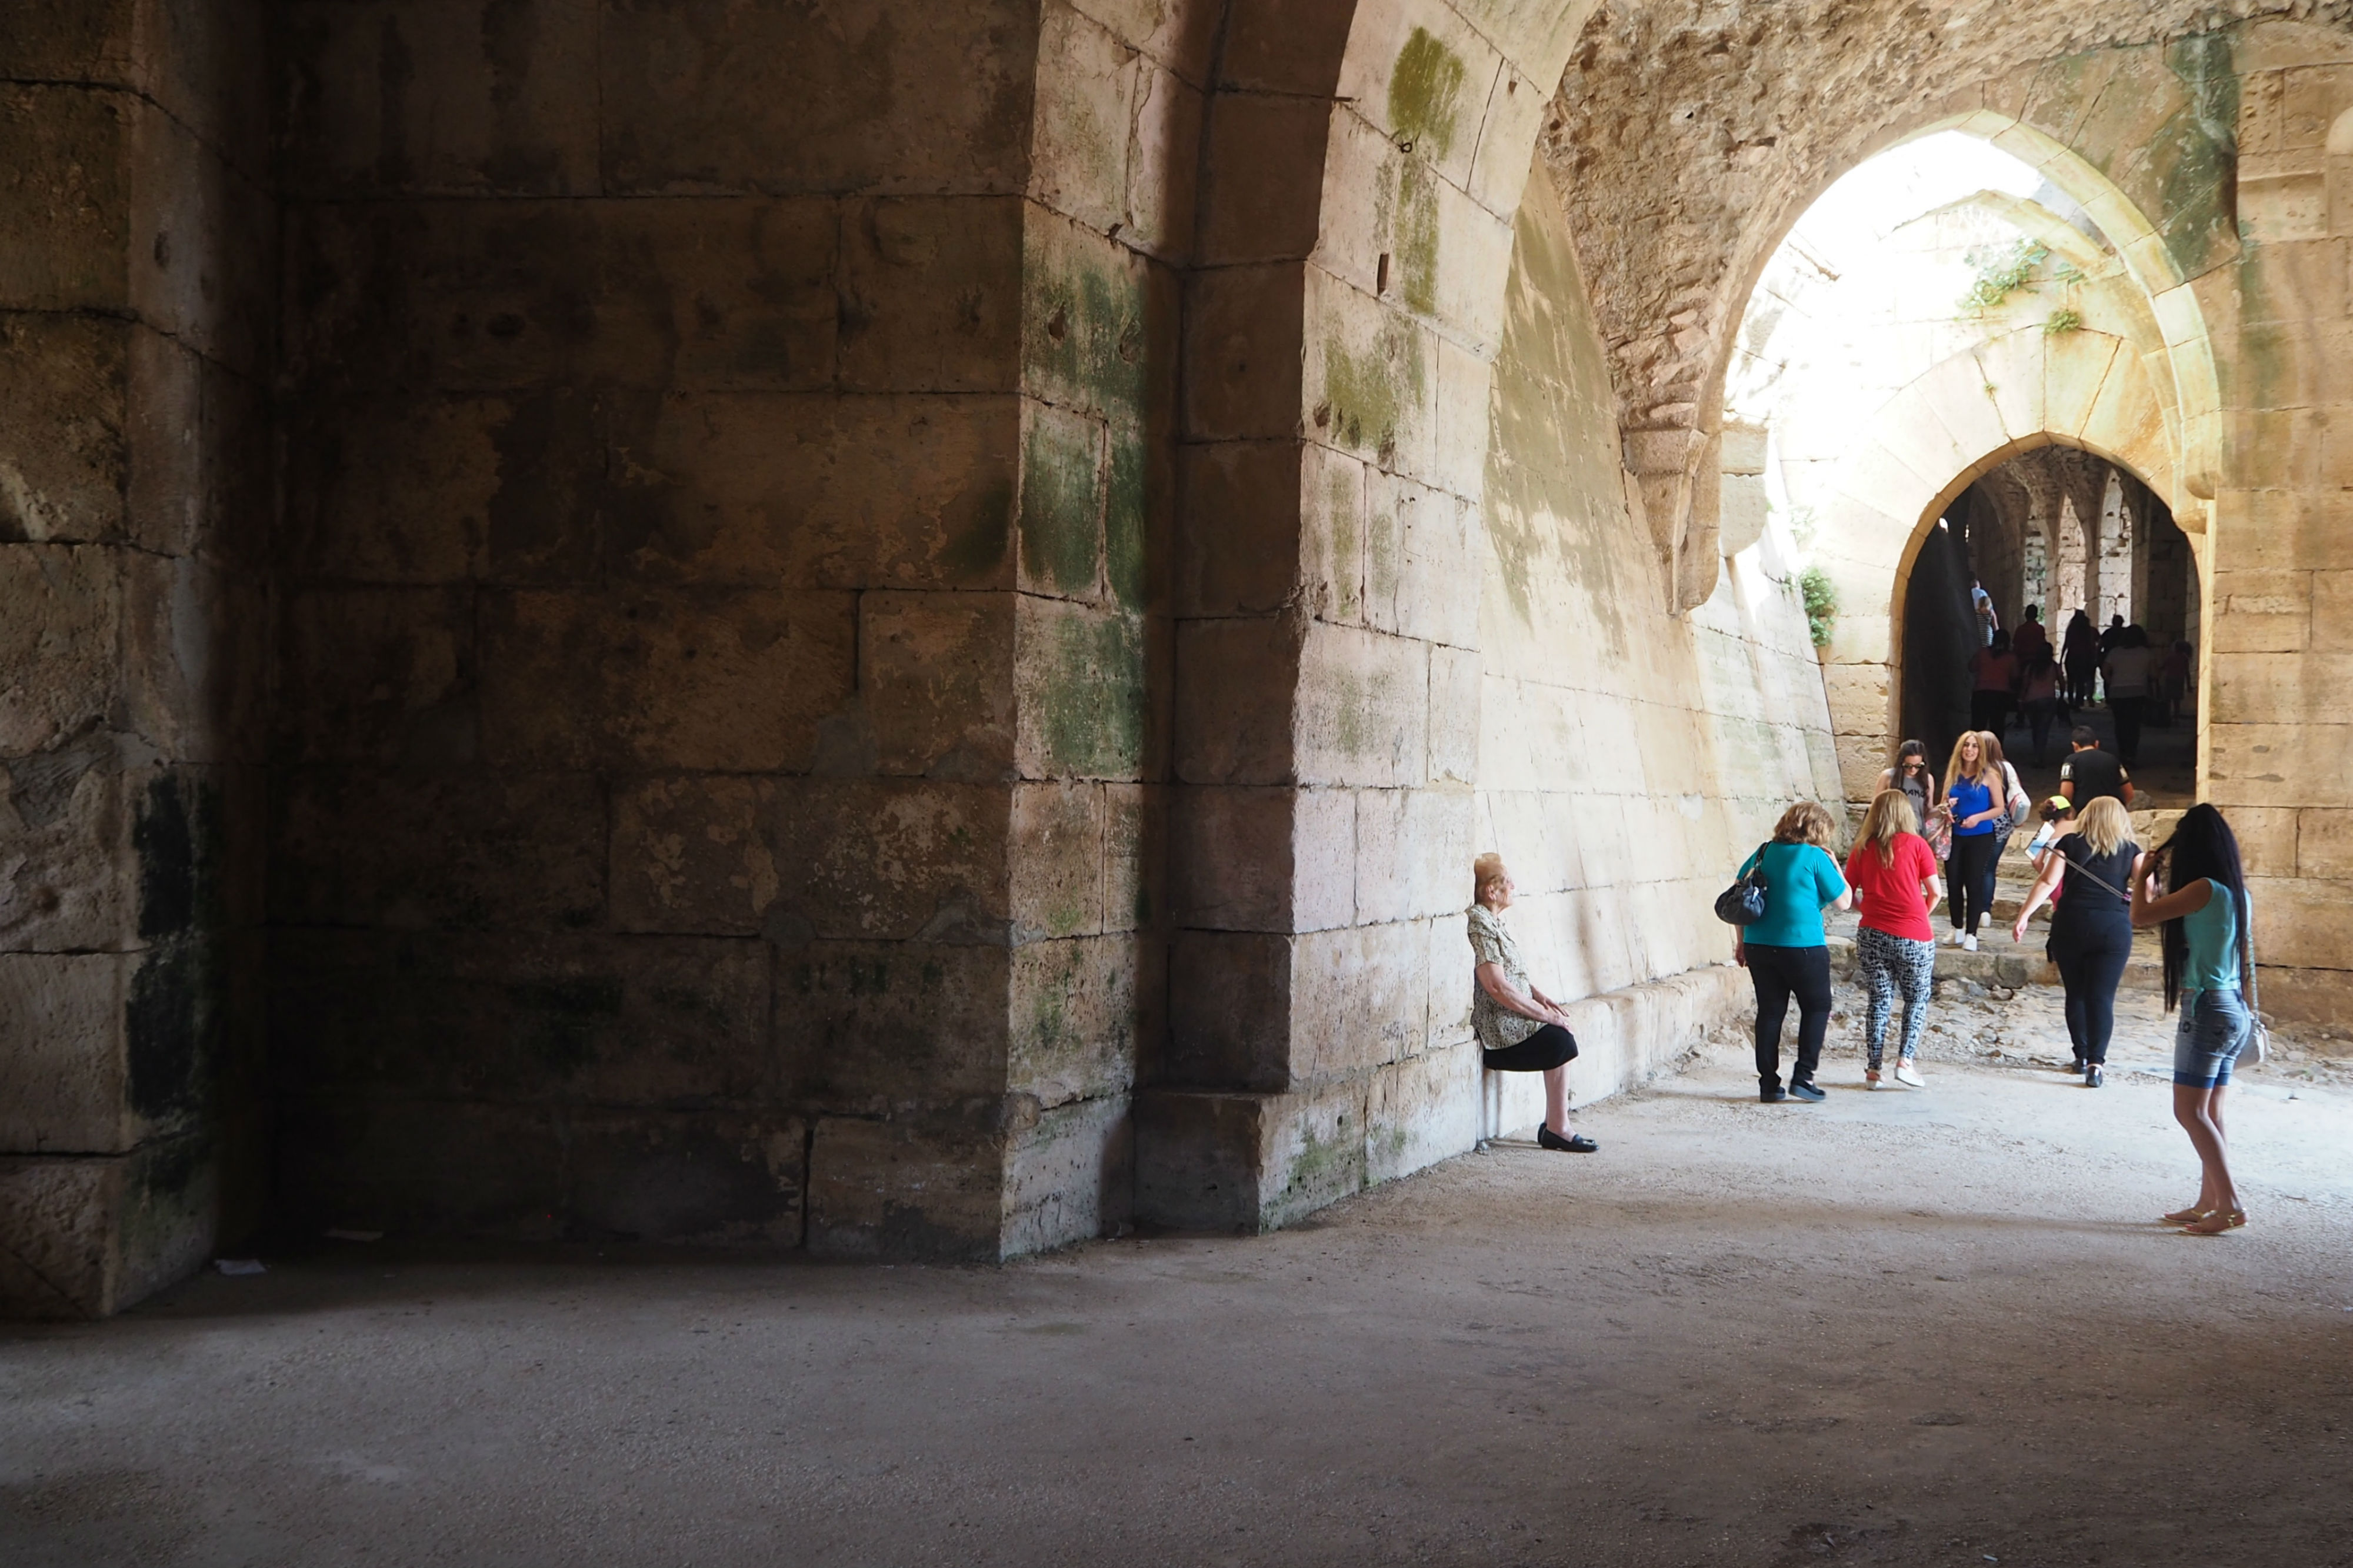 Syrian visitors are starting to return to the castle, although sections were damaged during the war (Tom Westcott/MEE)